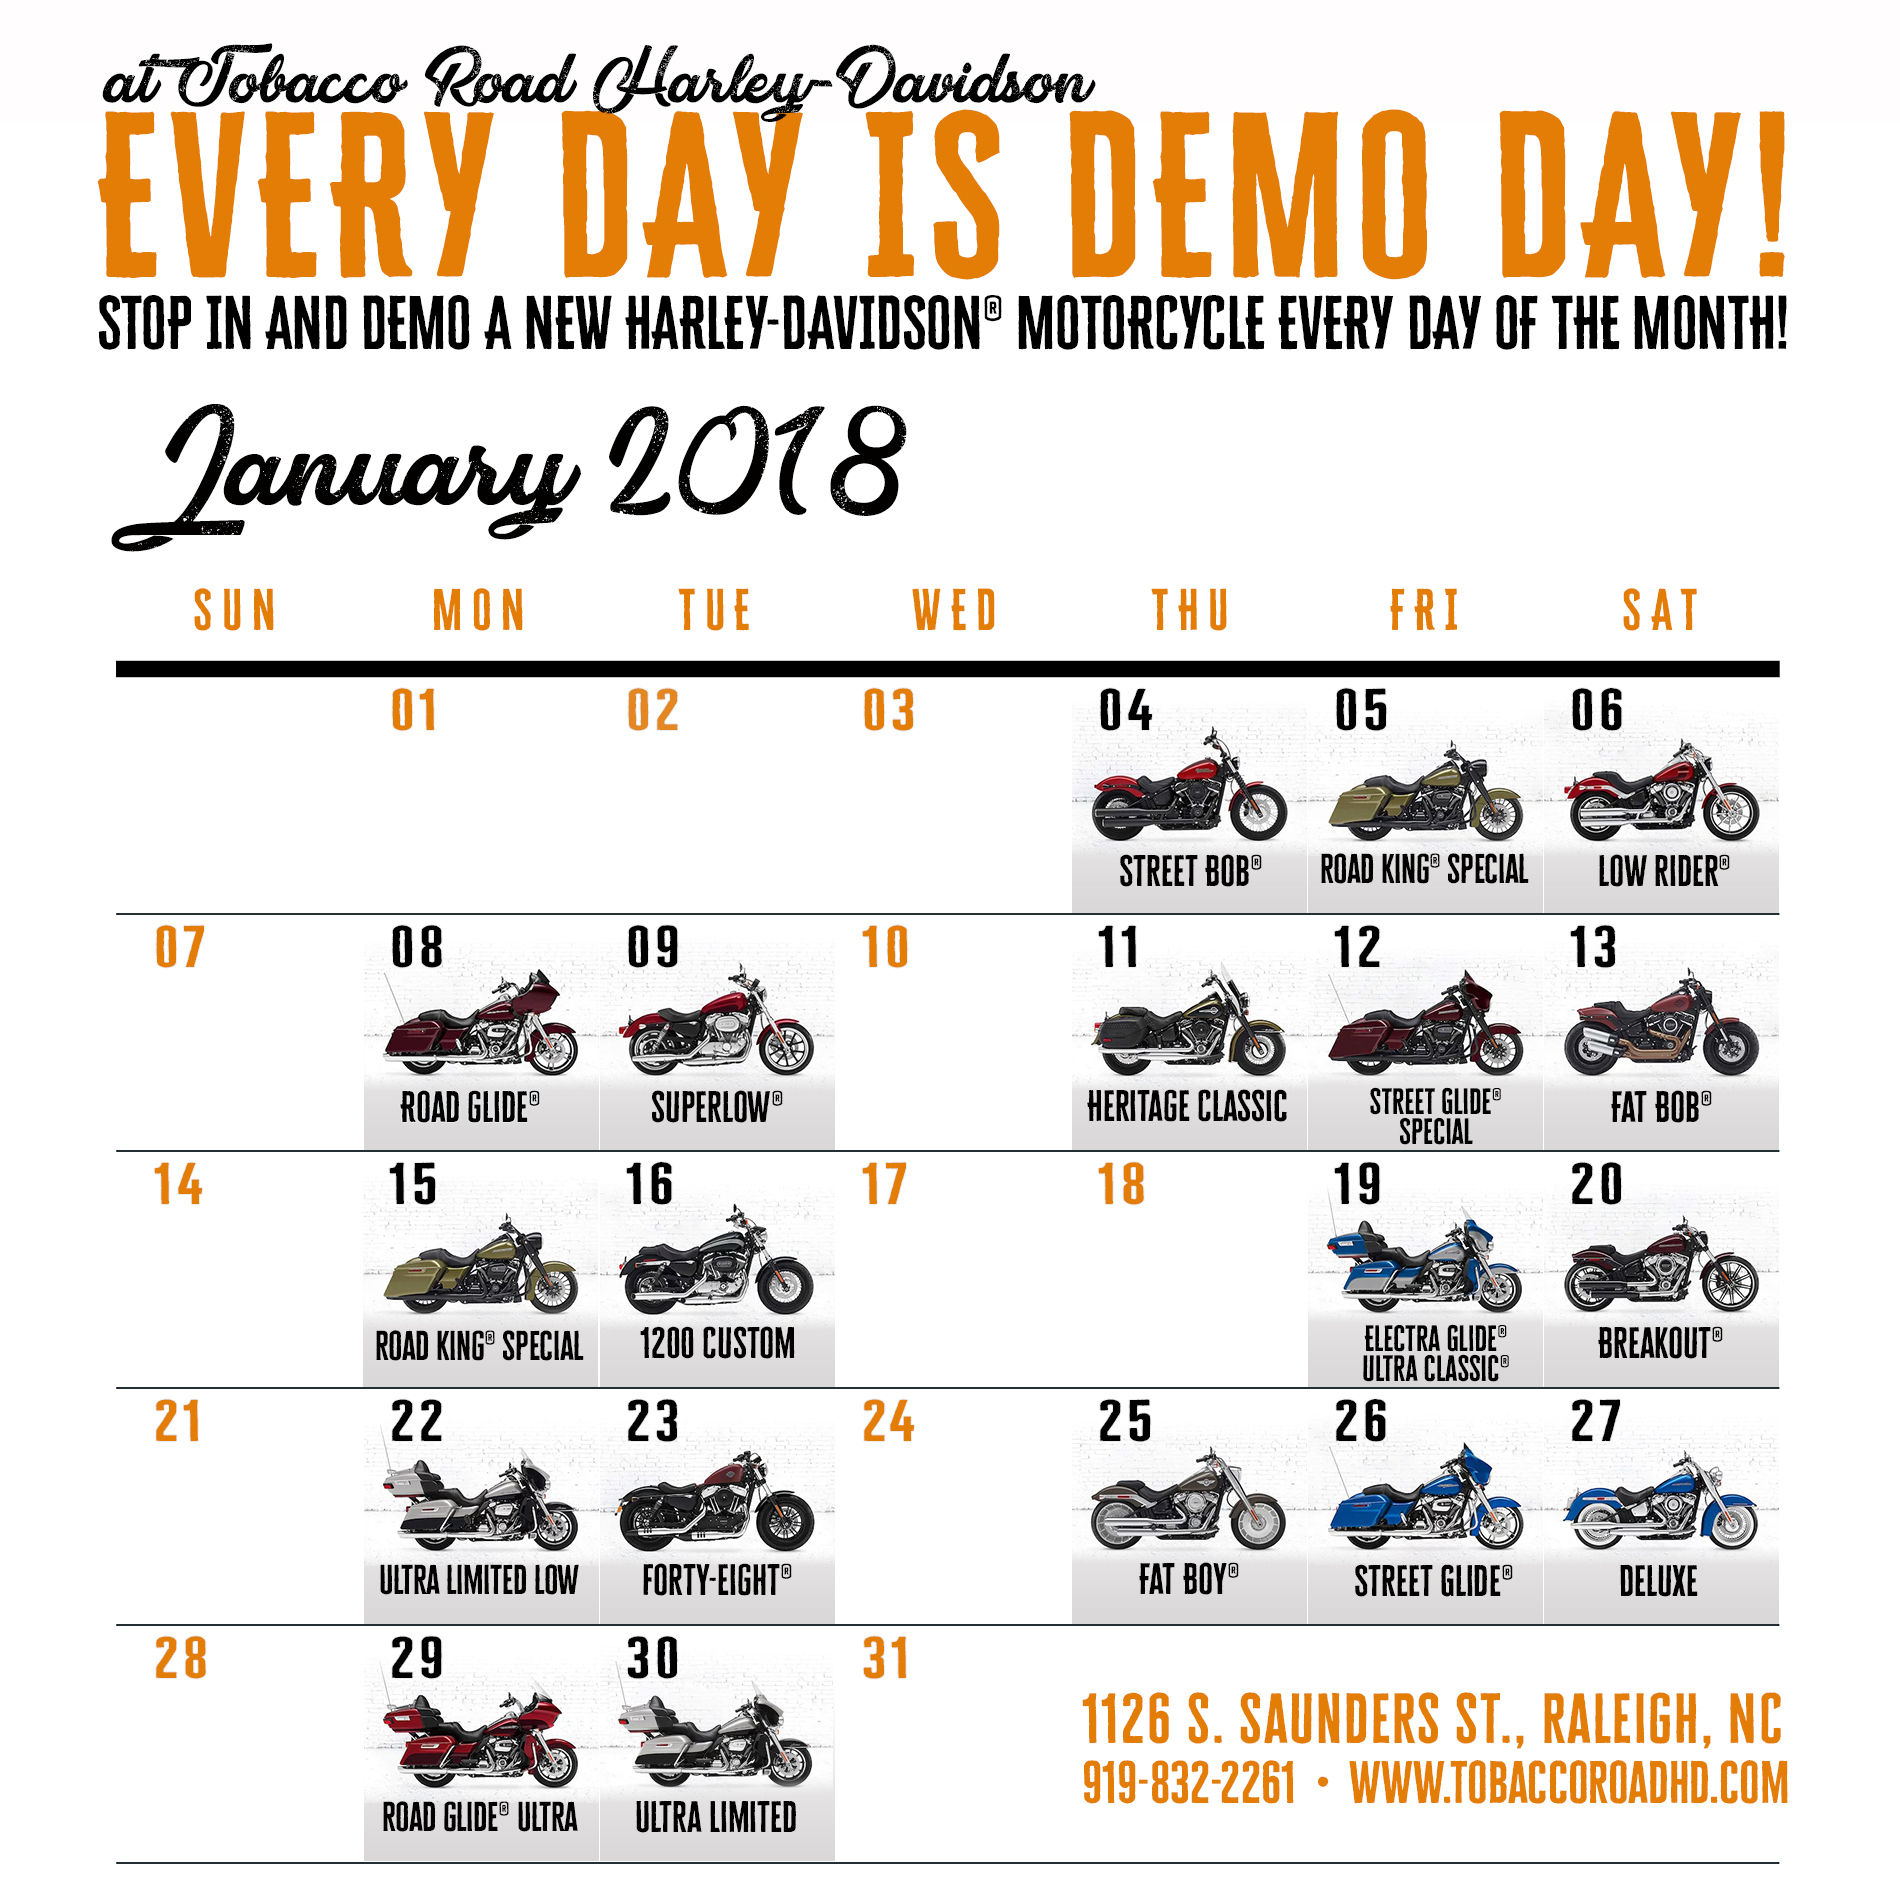 Every Day is Demo Day